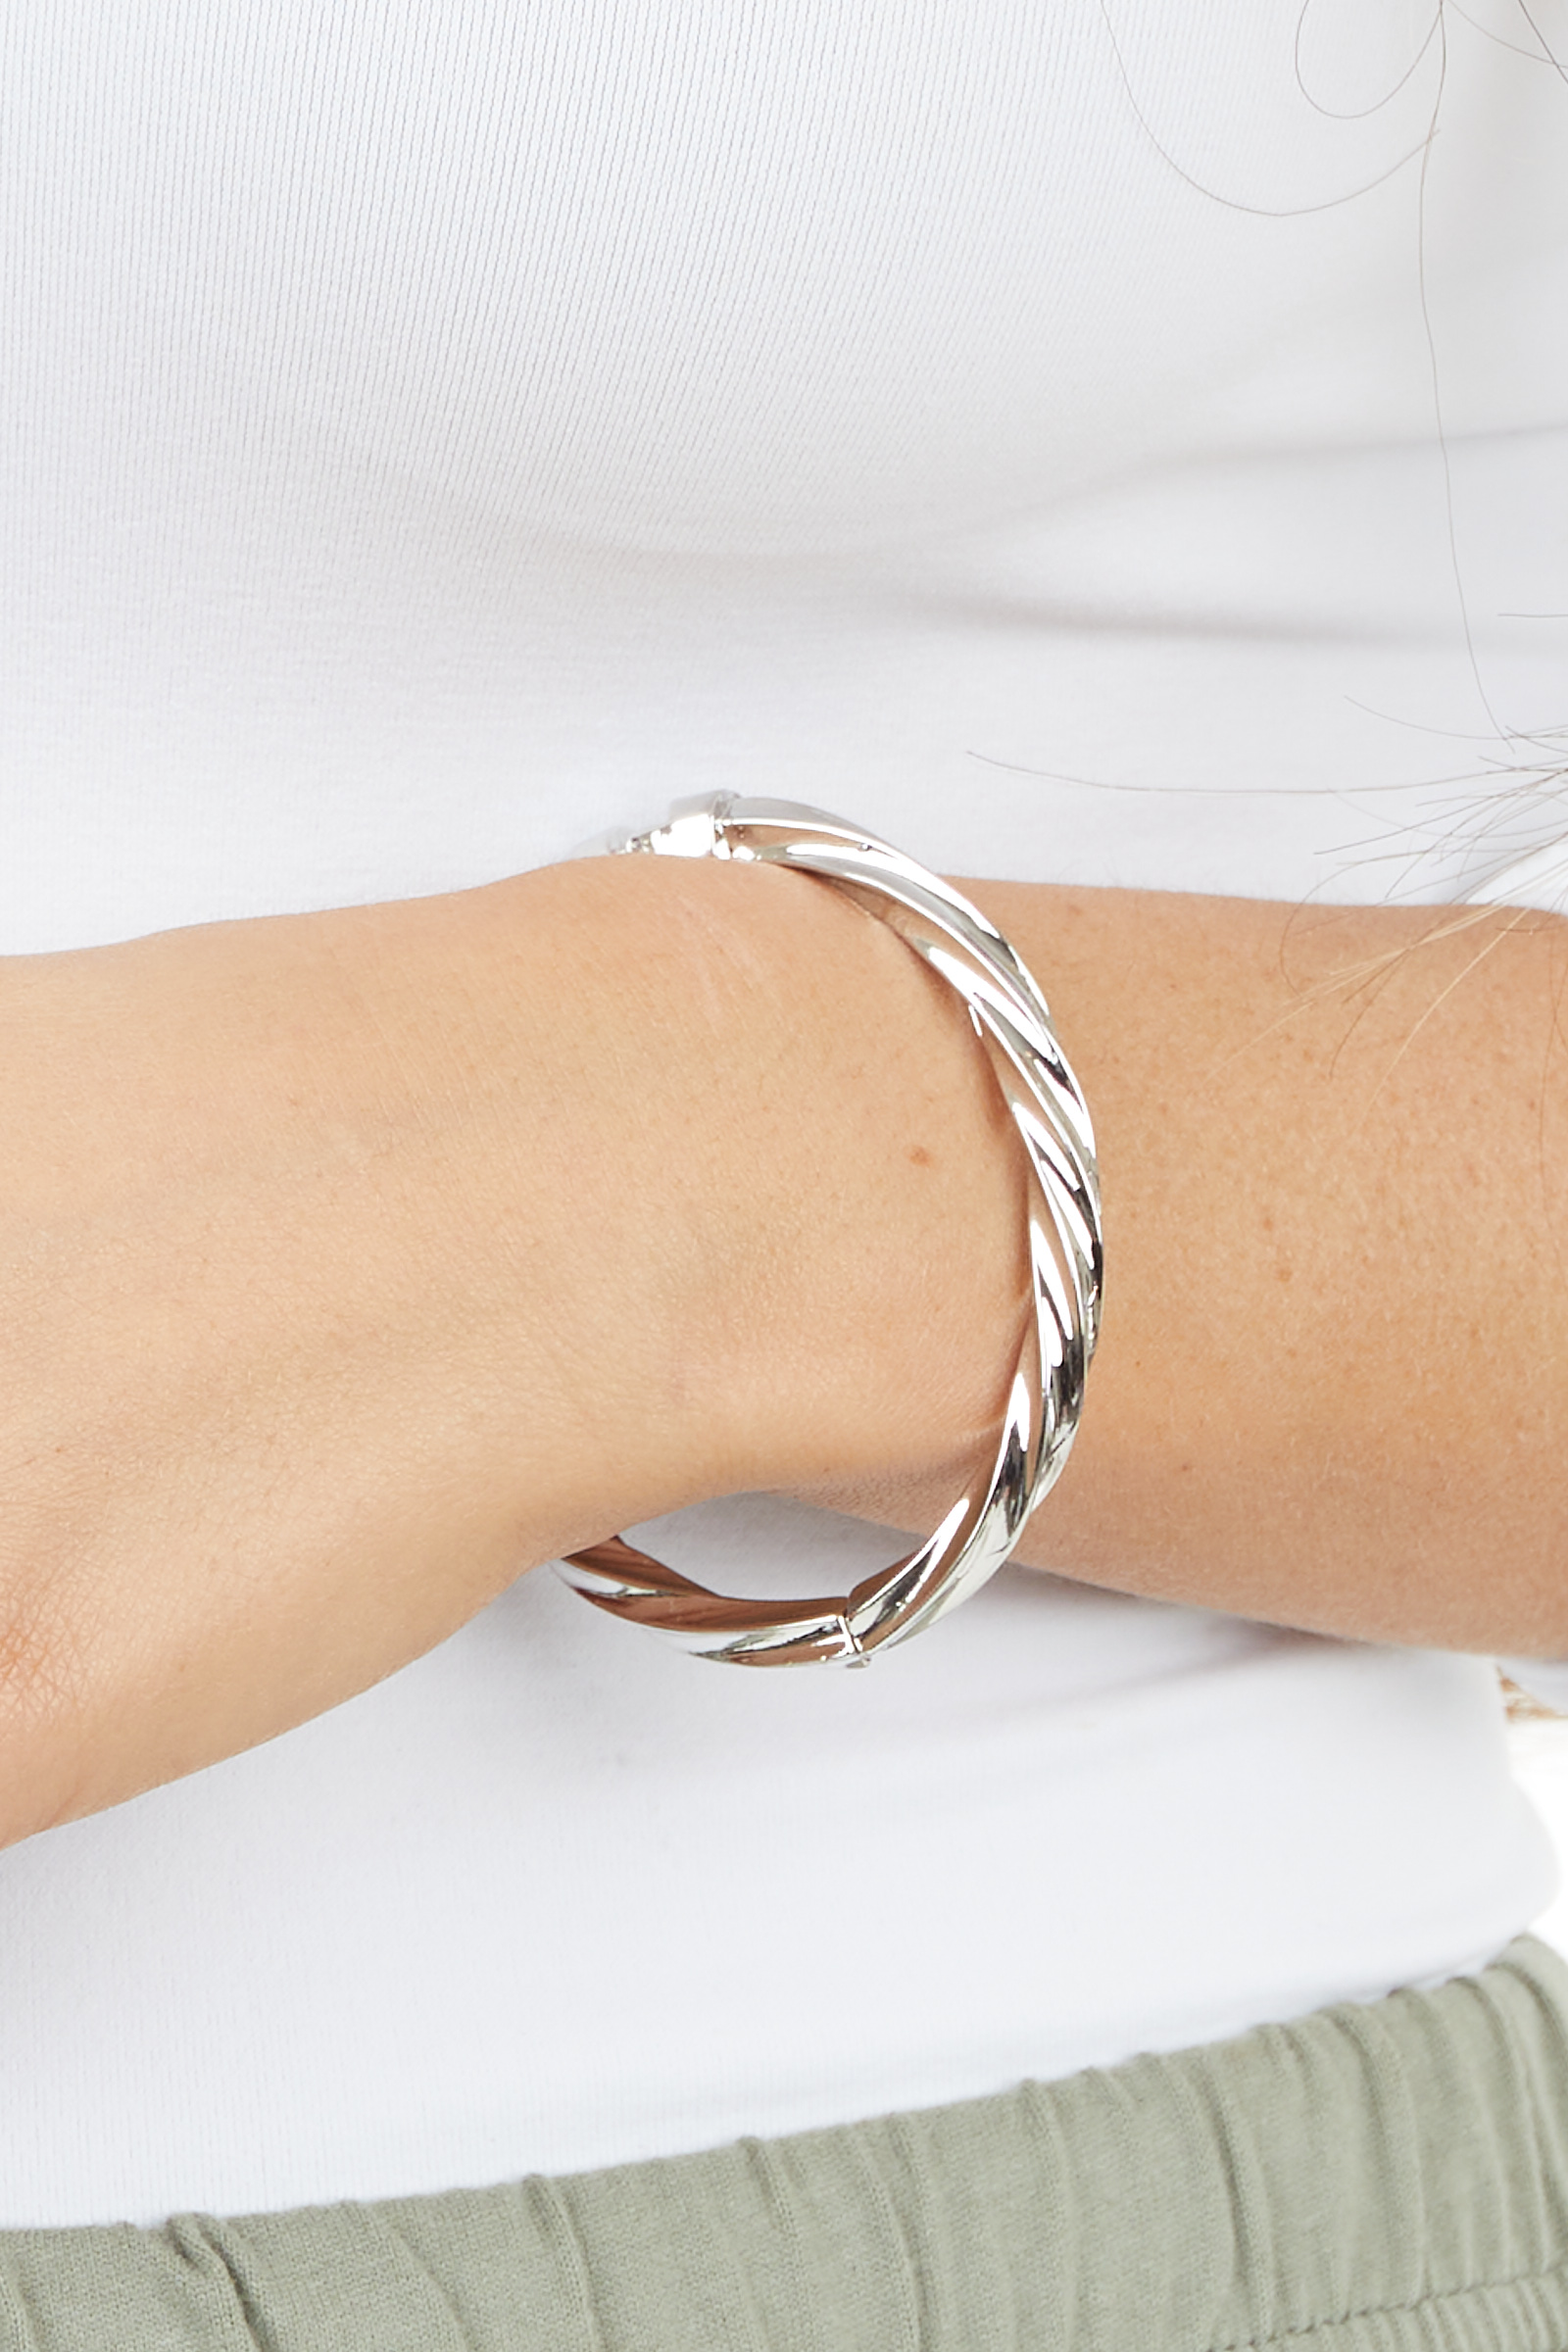 Silver Twisted Bangle Bracelet with Hinge Closure Detail